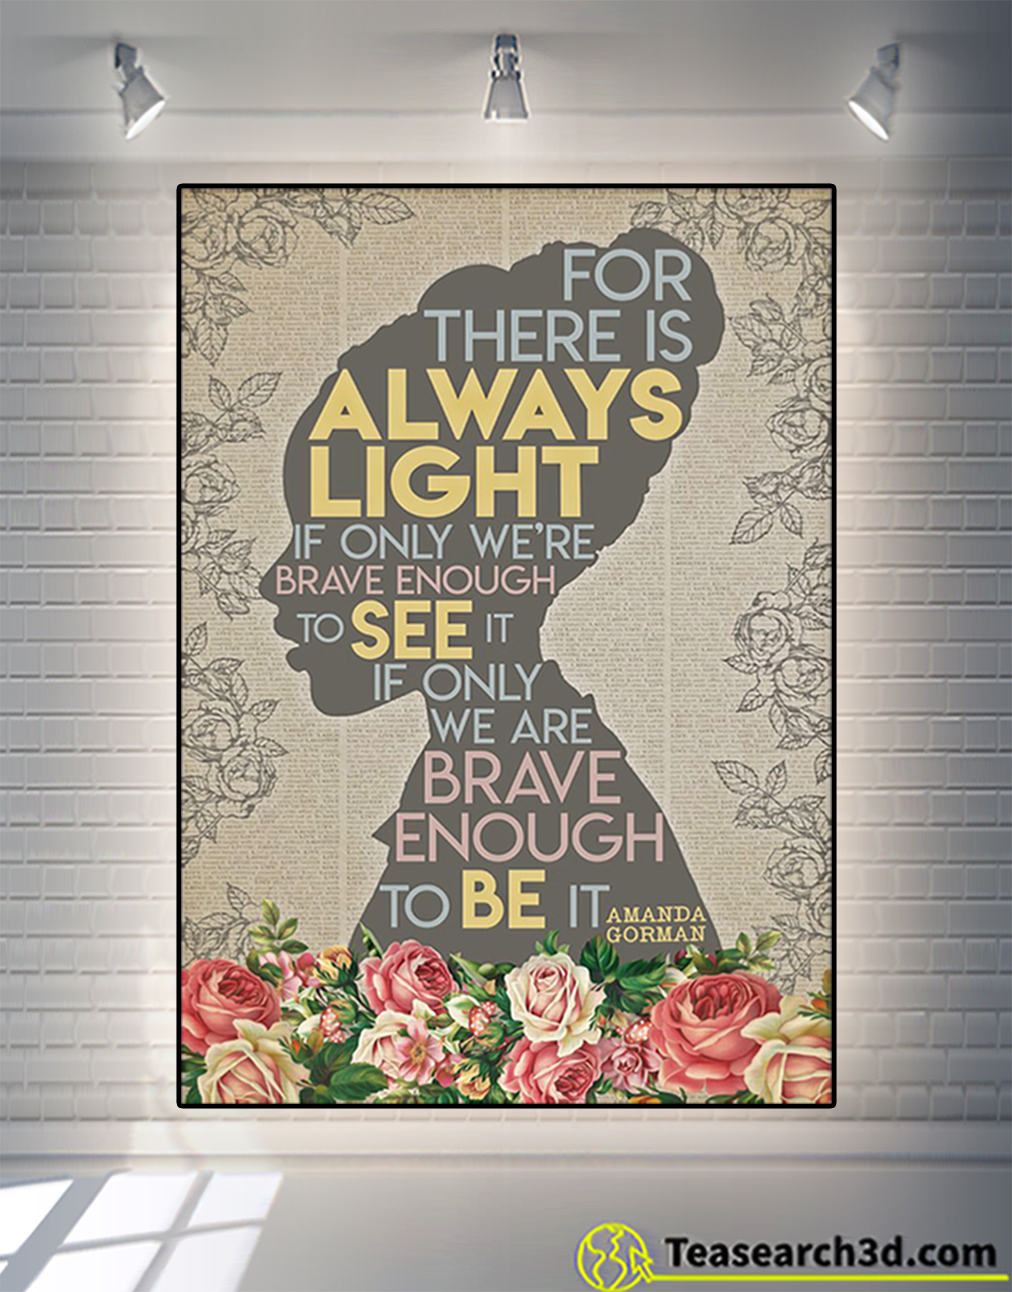 Amanda gorman for there is always light poster